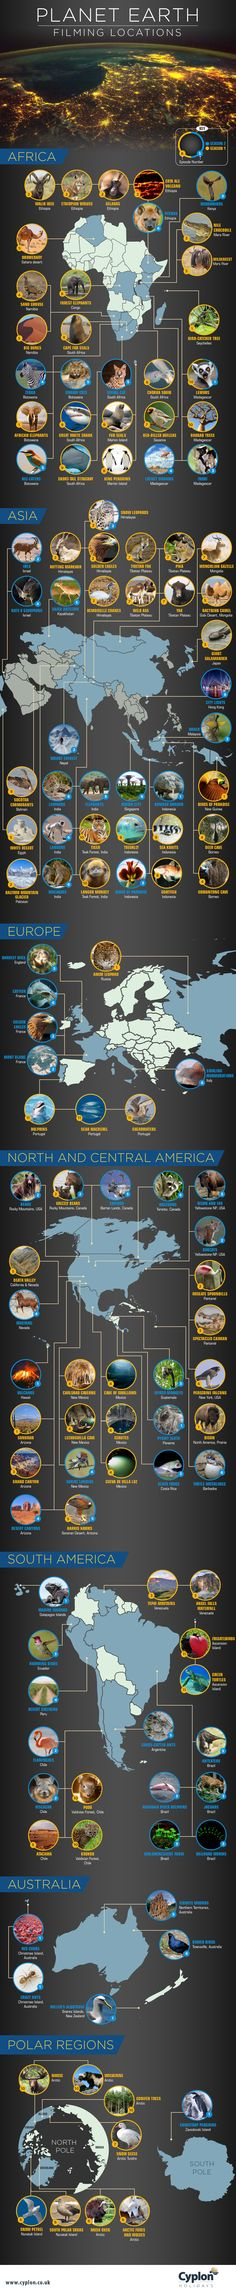 Filming locations used in BBC's Planet Earth series #map #bbc #planetearth #world